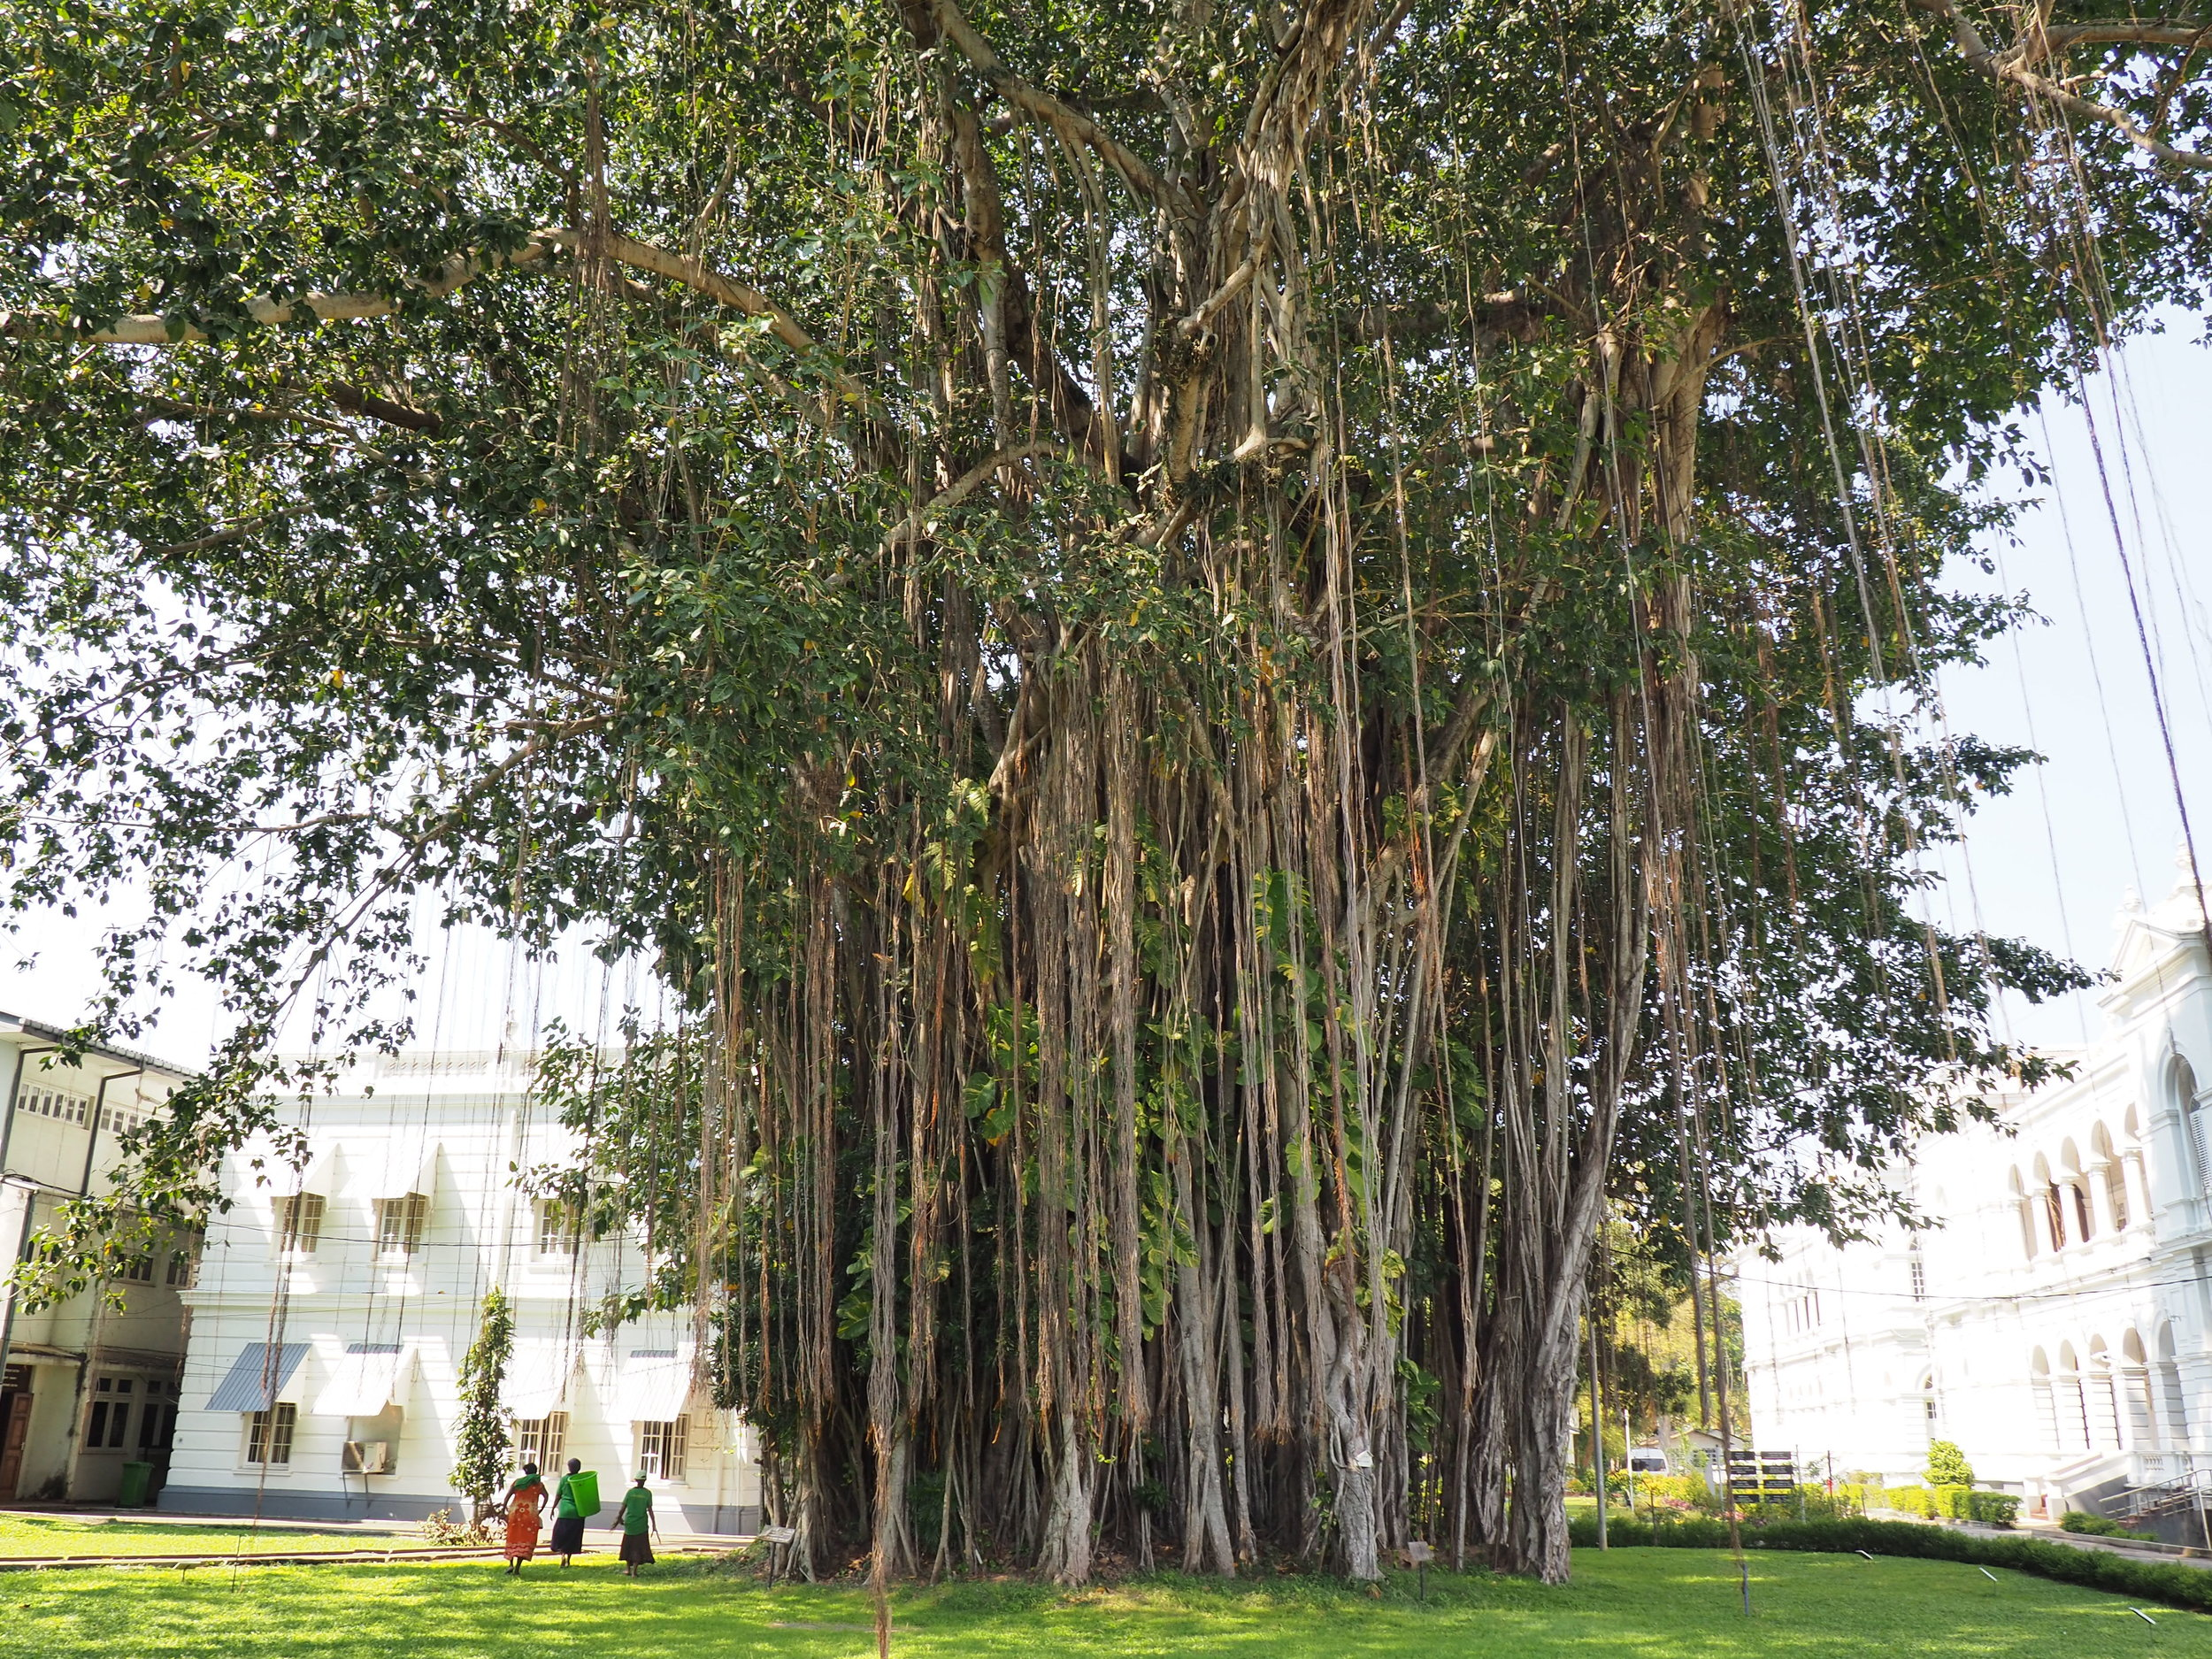 colombo National museum tree with people .JPG